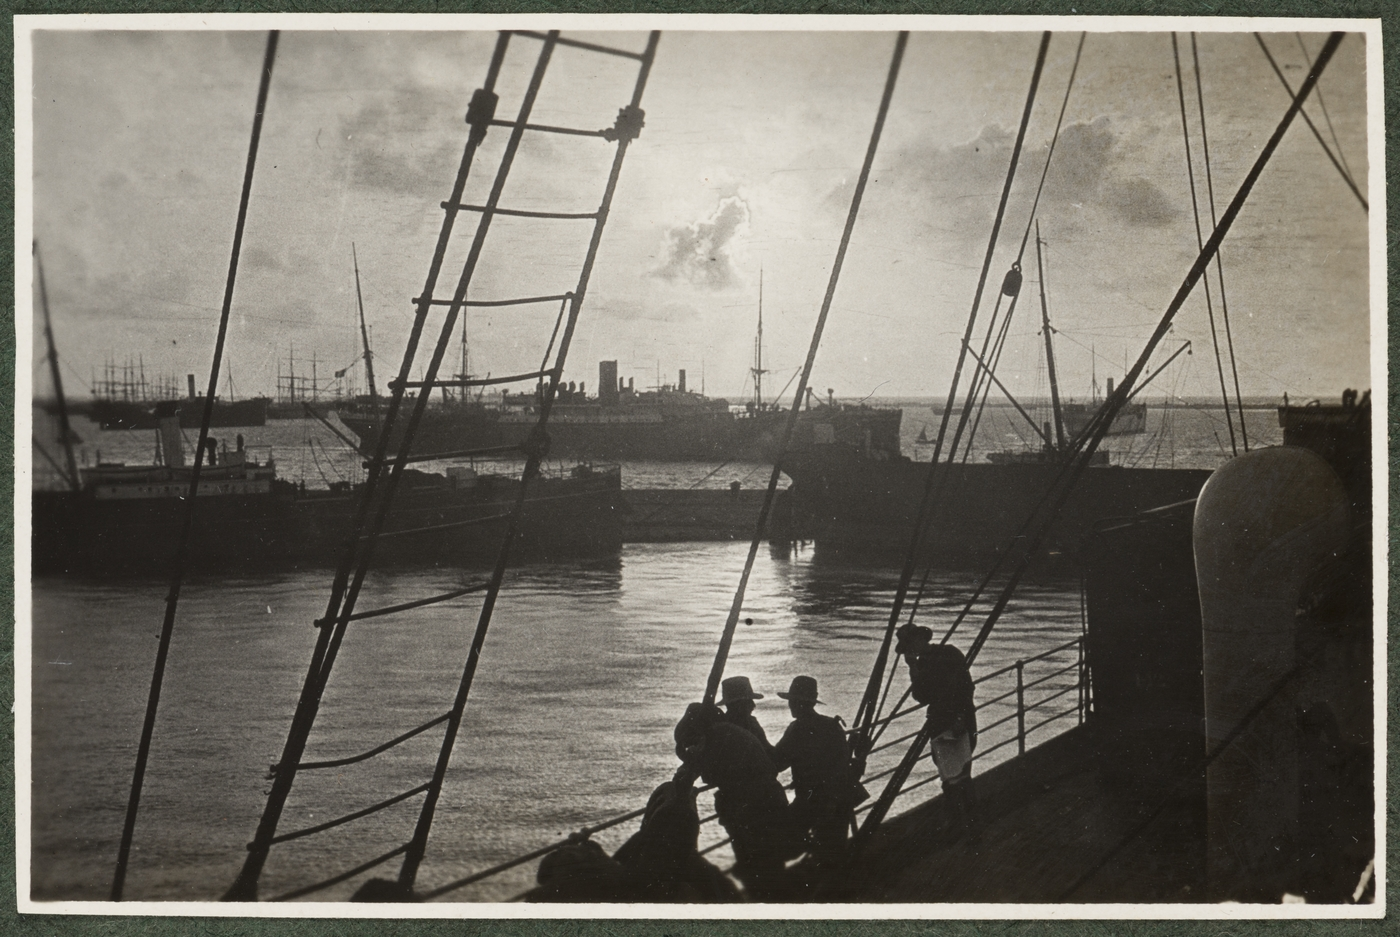 Sunsets at Alexandria, 9-4-15, Kensington to Cairo and from Cairo to Gallipoli : album of photographs, 1914-1915 / H.C. Marshall